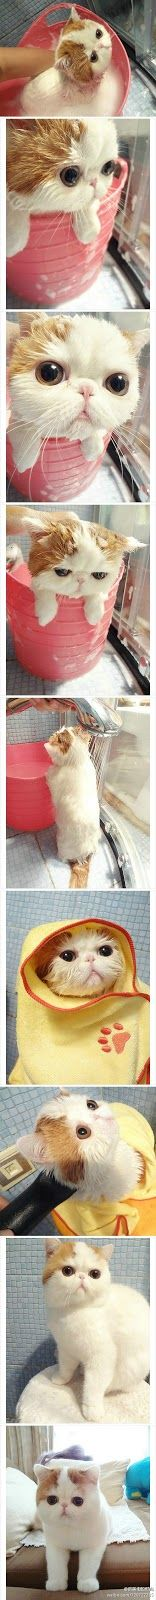 Pictures of Cute cat while giving bath.....(click on picture to see more)